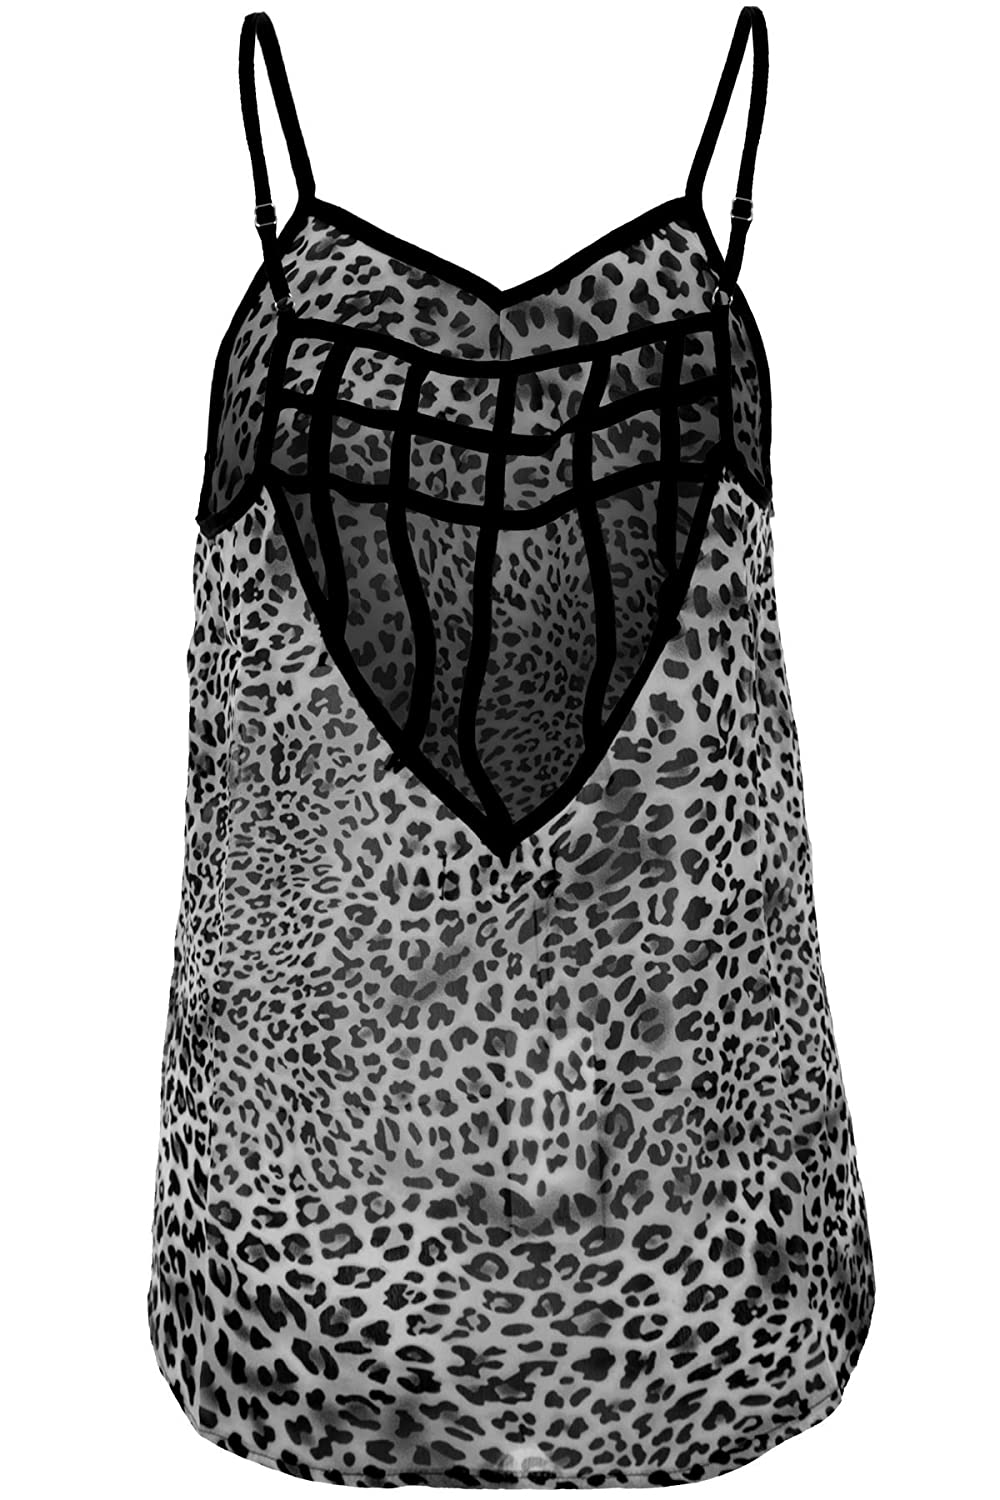 SAPPHIRE BOUTIQUE Womens Strappy Semi Sheer Cut Out Low Back Flare Baggy  Leopard Vest Top: Amazon.co.uk: Clothing